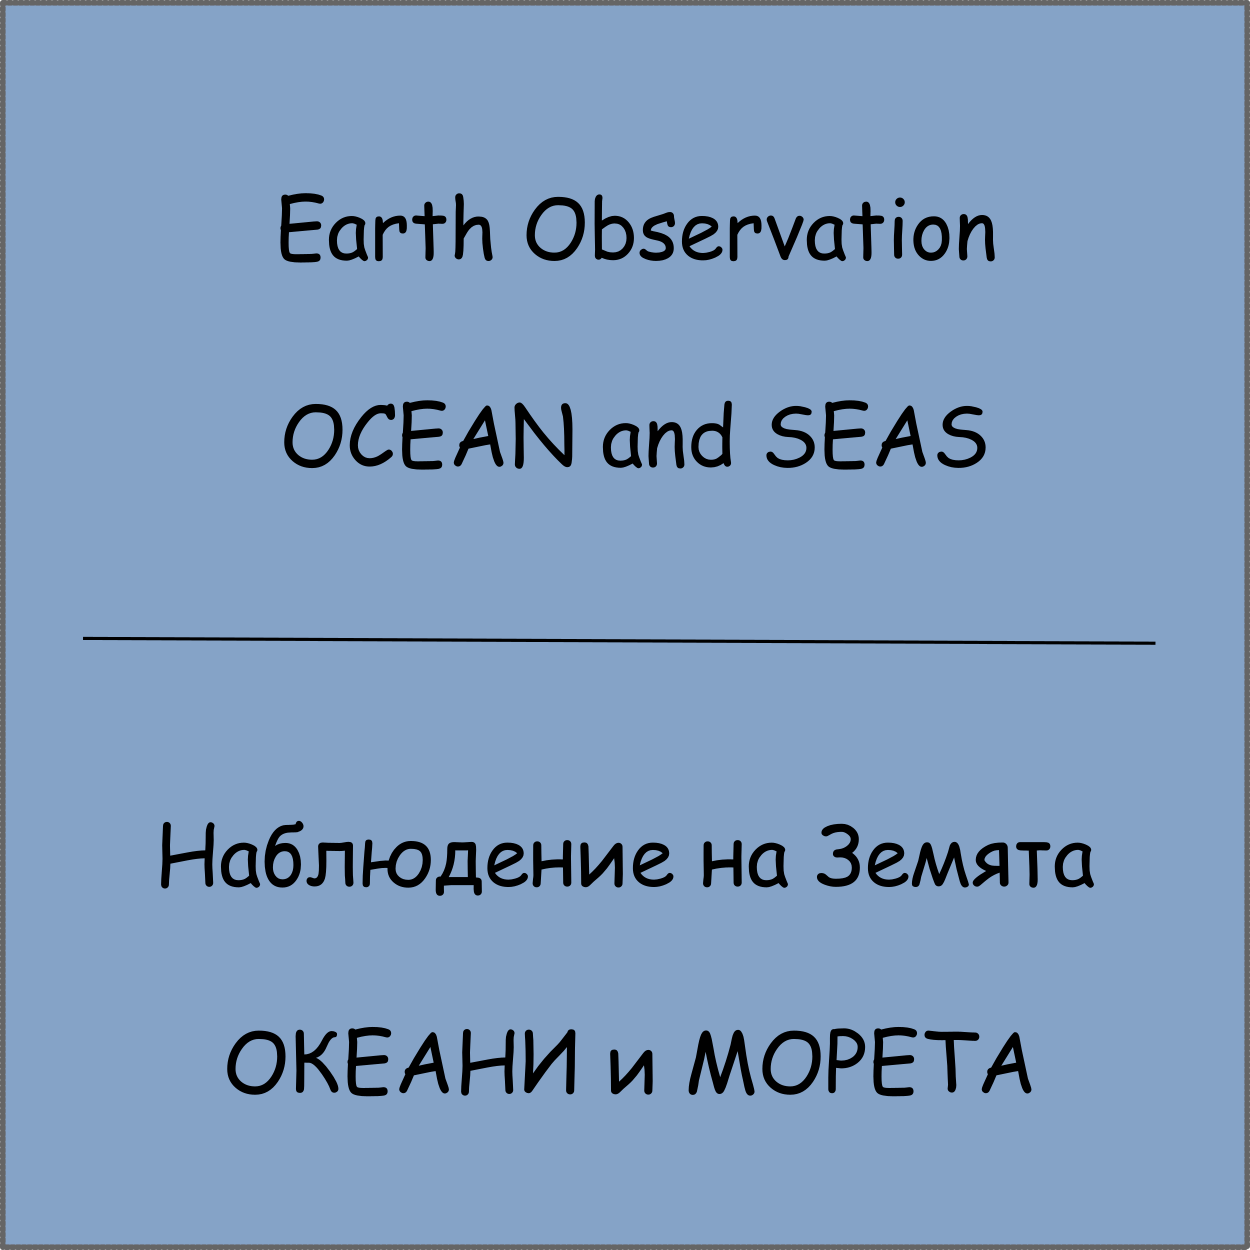 Earth Observation - OCEAN and SEAS